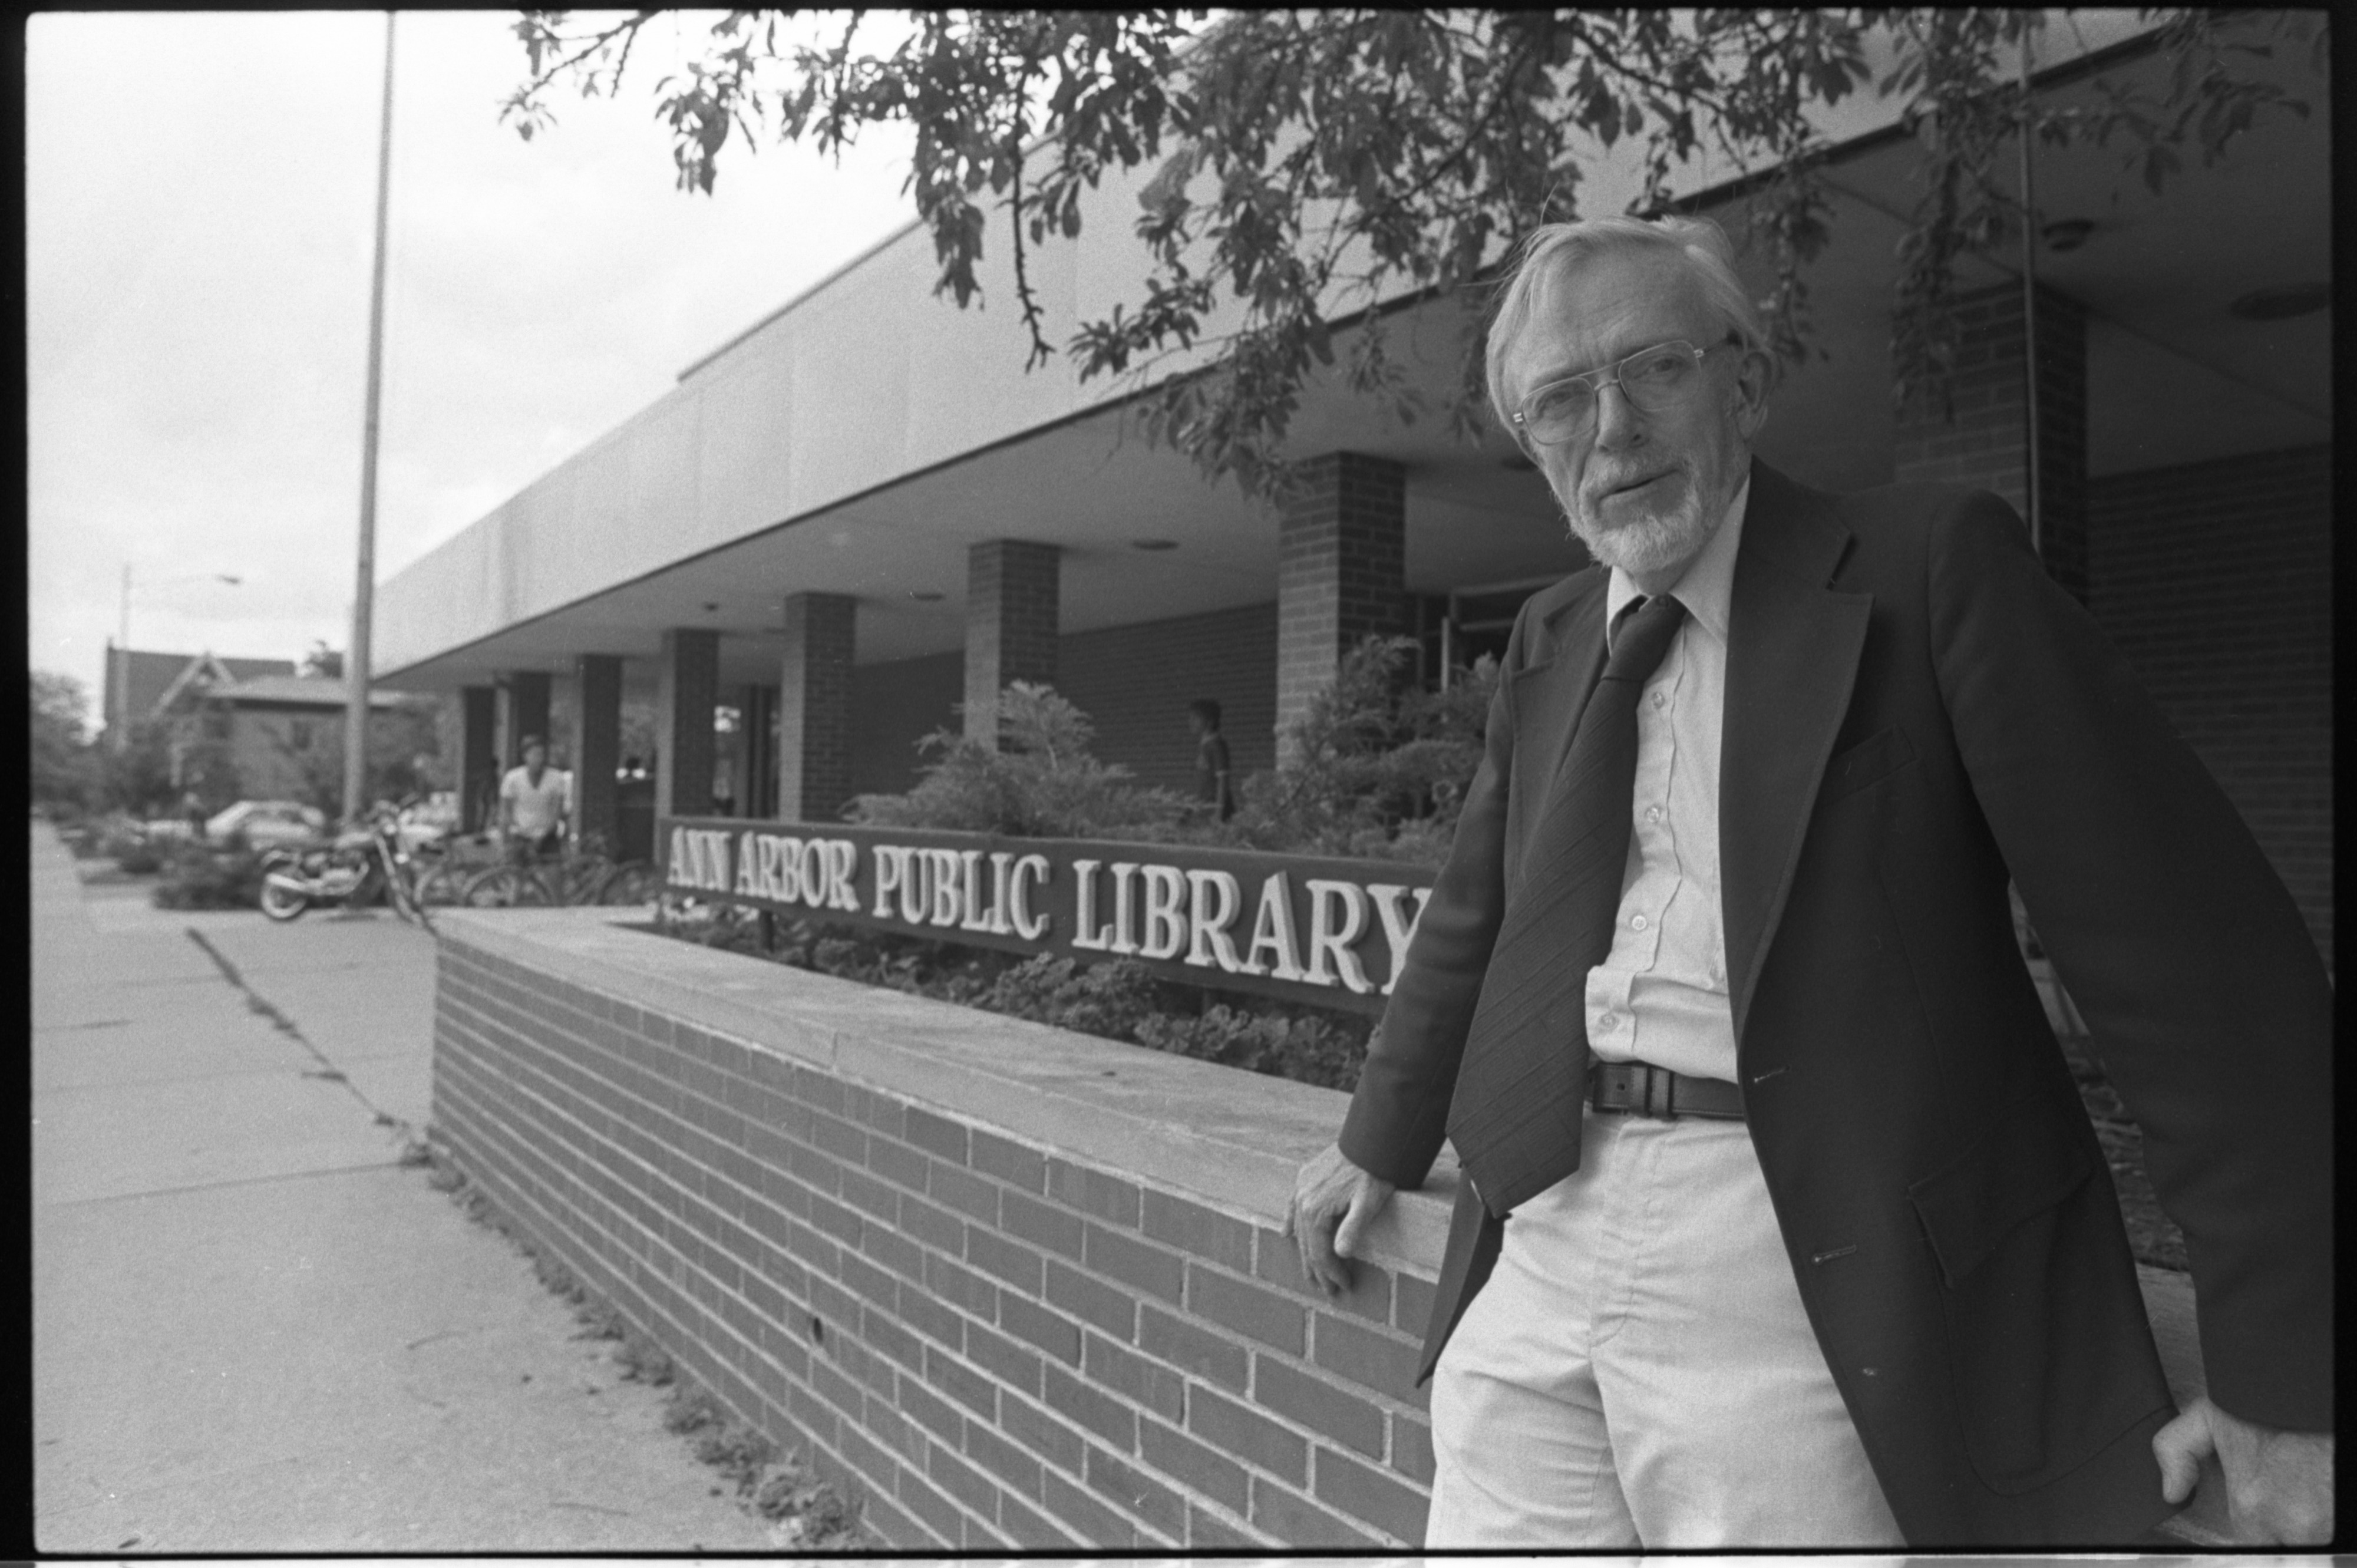 Gene Wilson, Director Of The Ann Arbor Public Library, July 1980 image